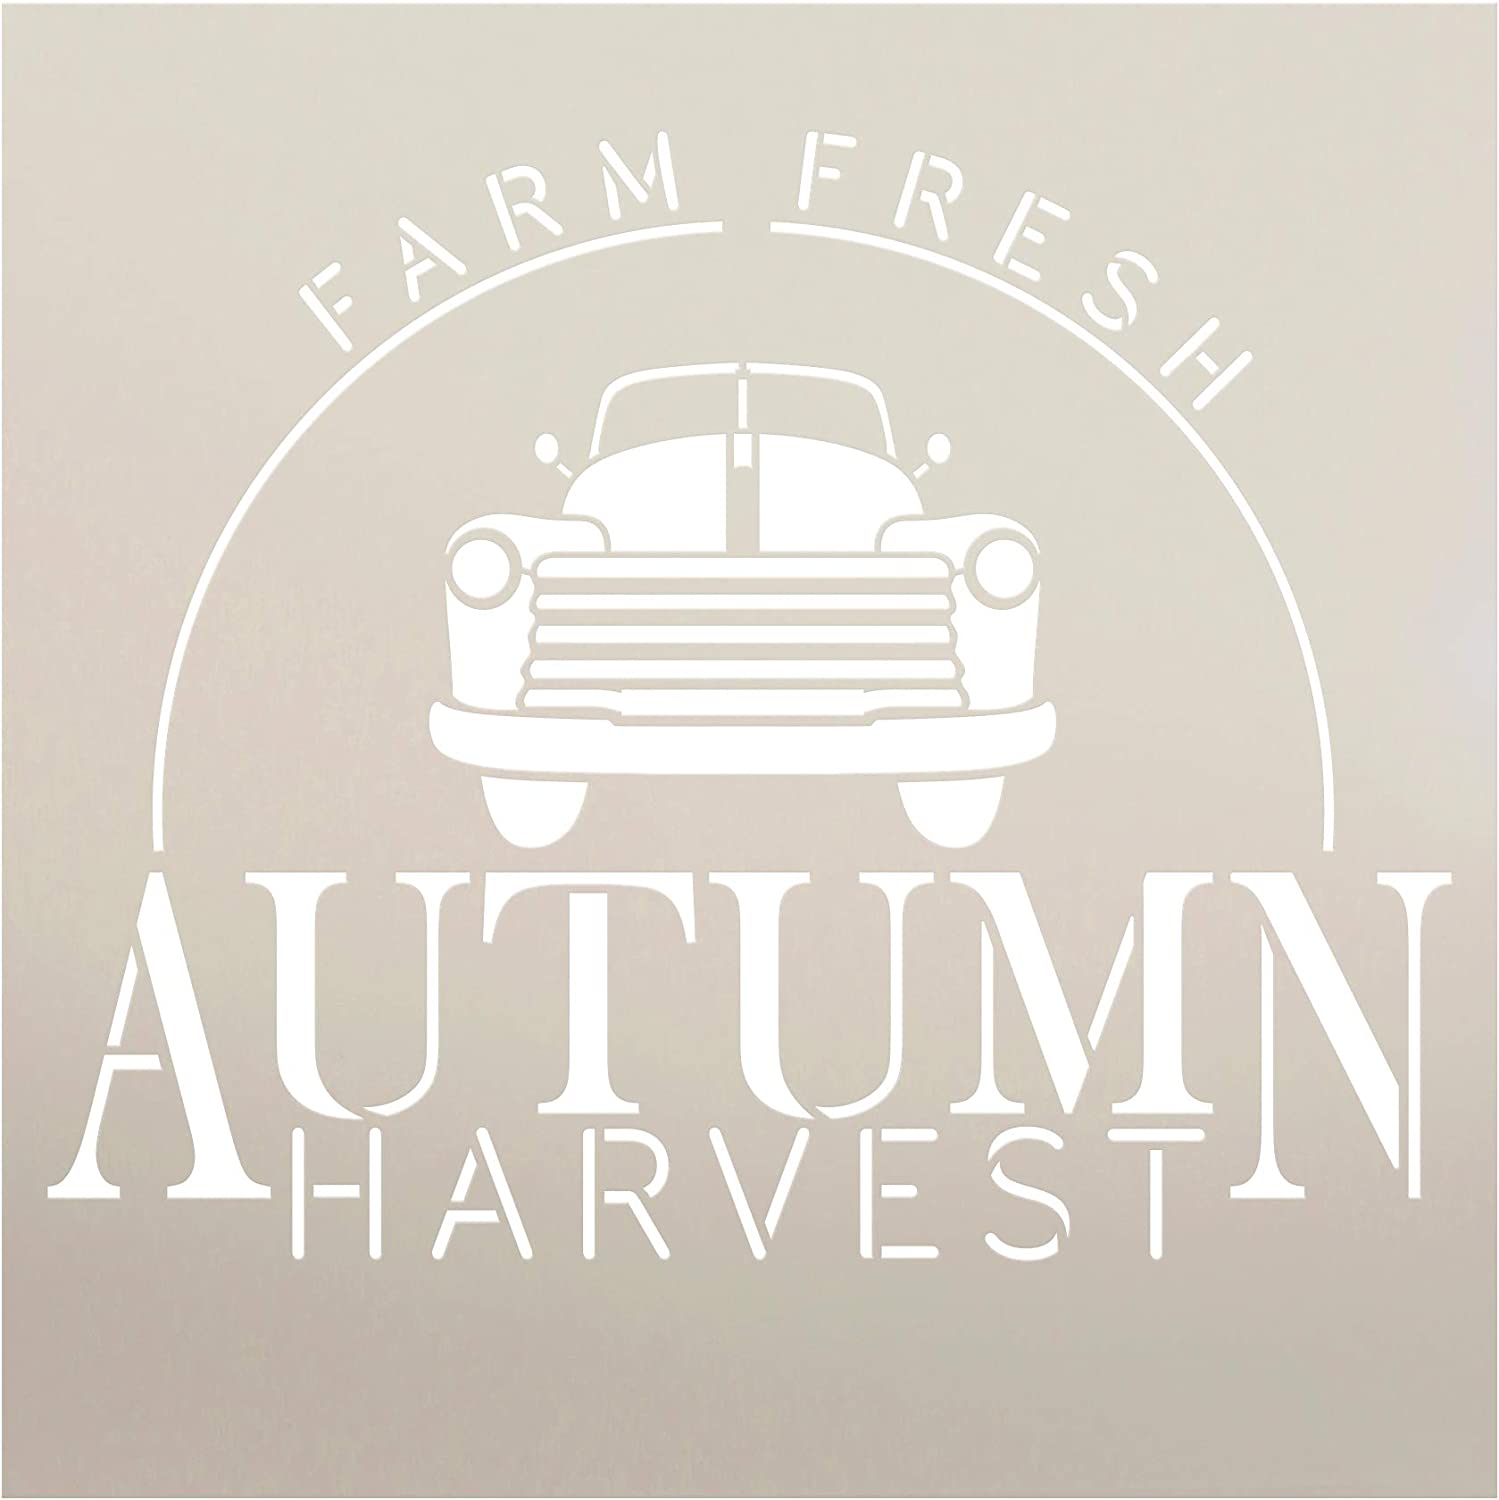 Farm Fresh Autumn Harvest Stencil by StudioR12 | Old Vintage Truck | Reusable Mylar Template | Paint Wood Sign | Craft Retro Fall Country Home Decor - Porch | Rustic DIY Seasonal Gift | Select Size